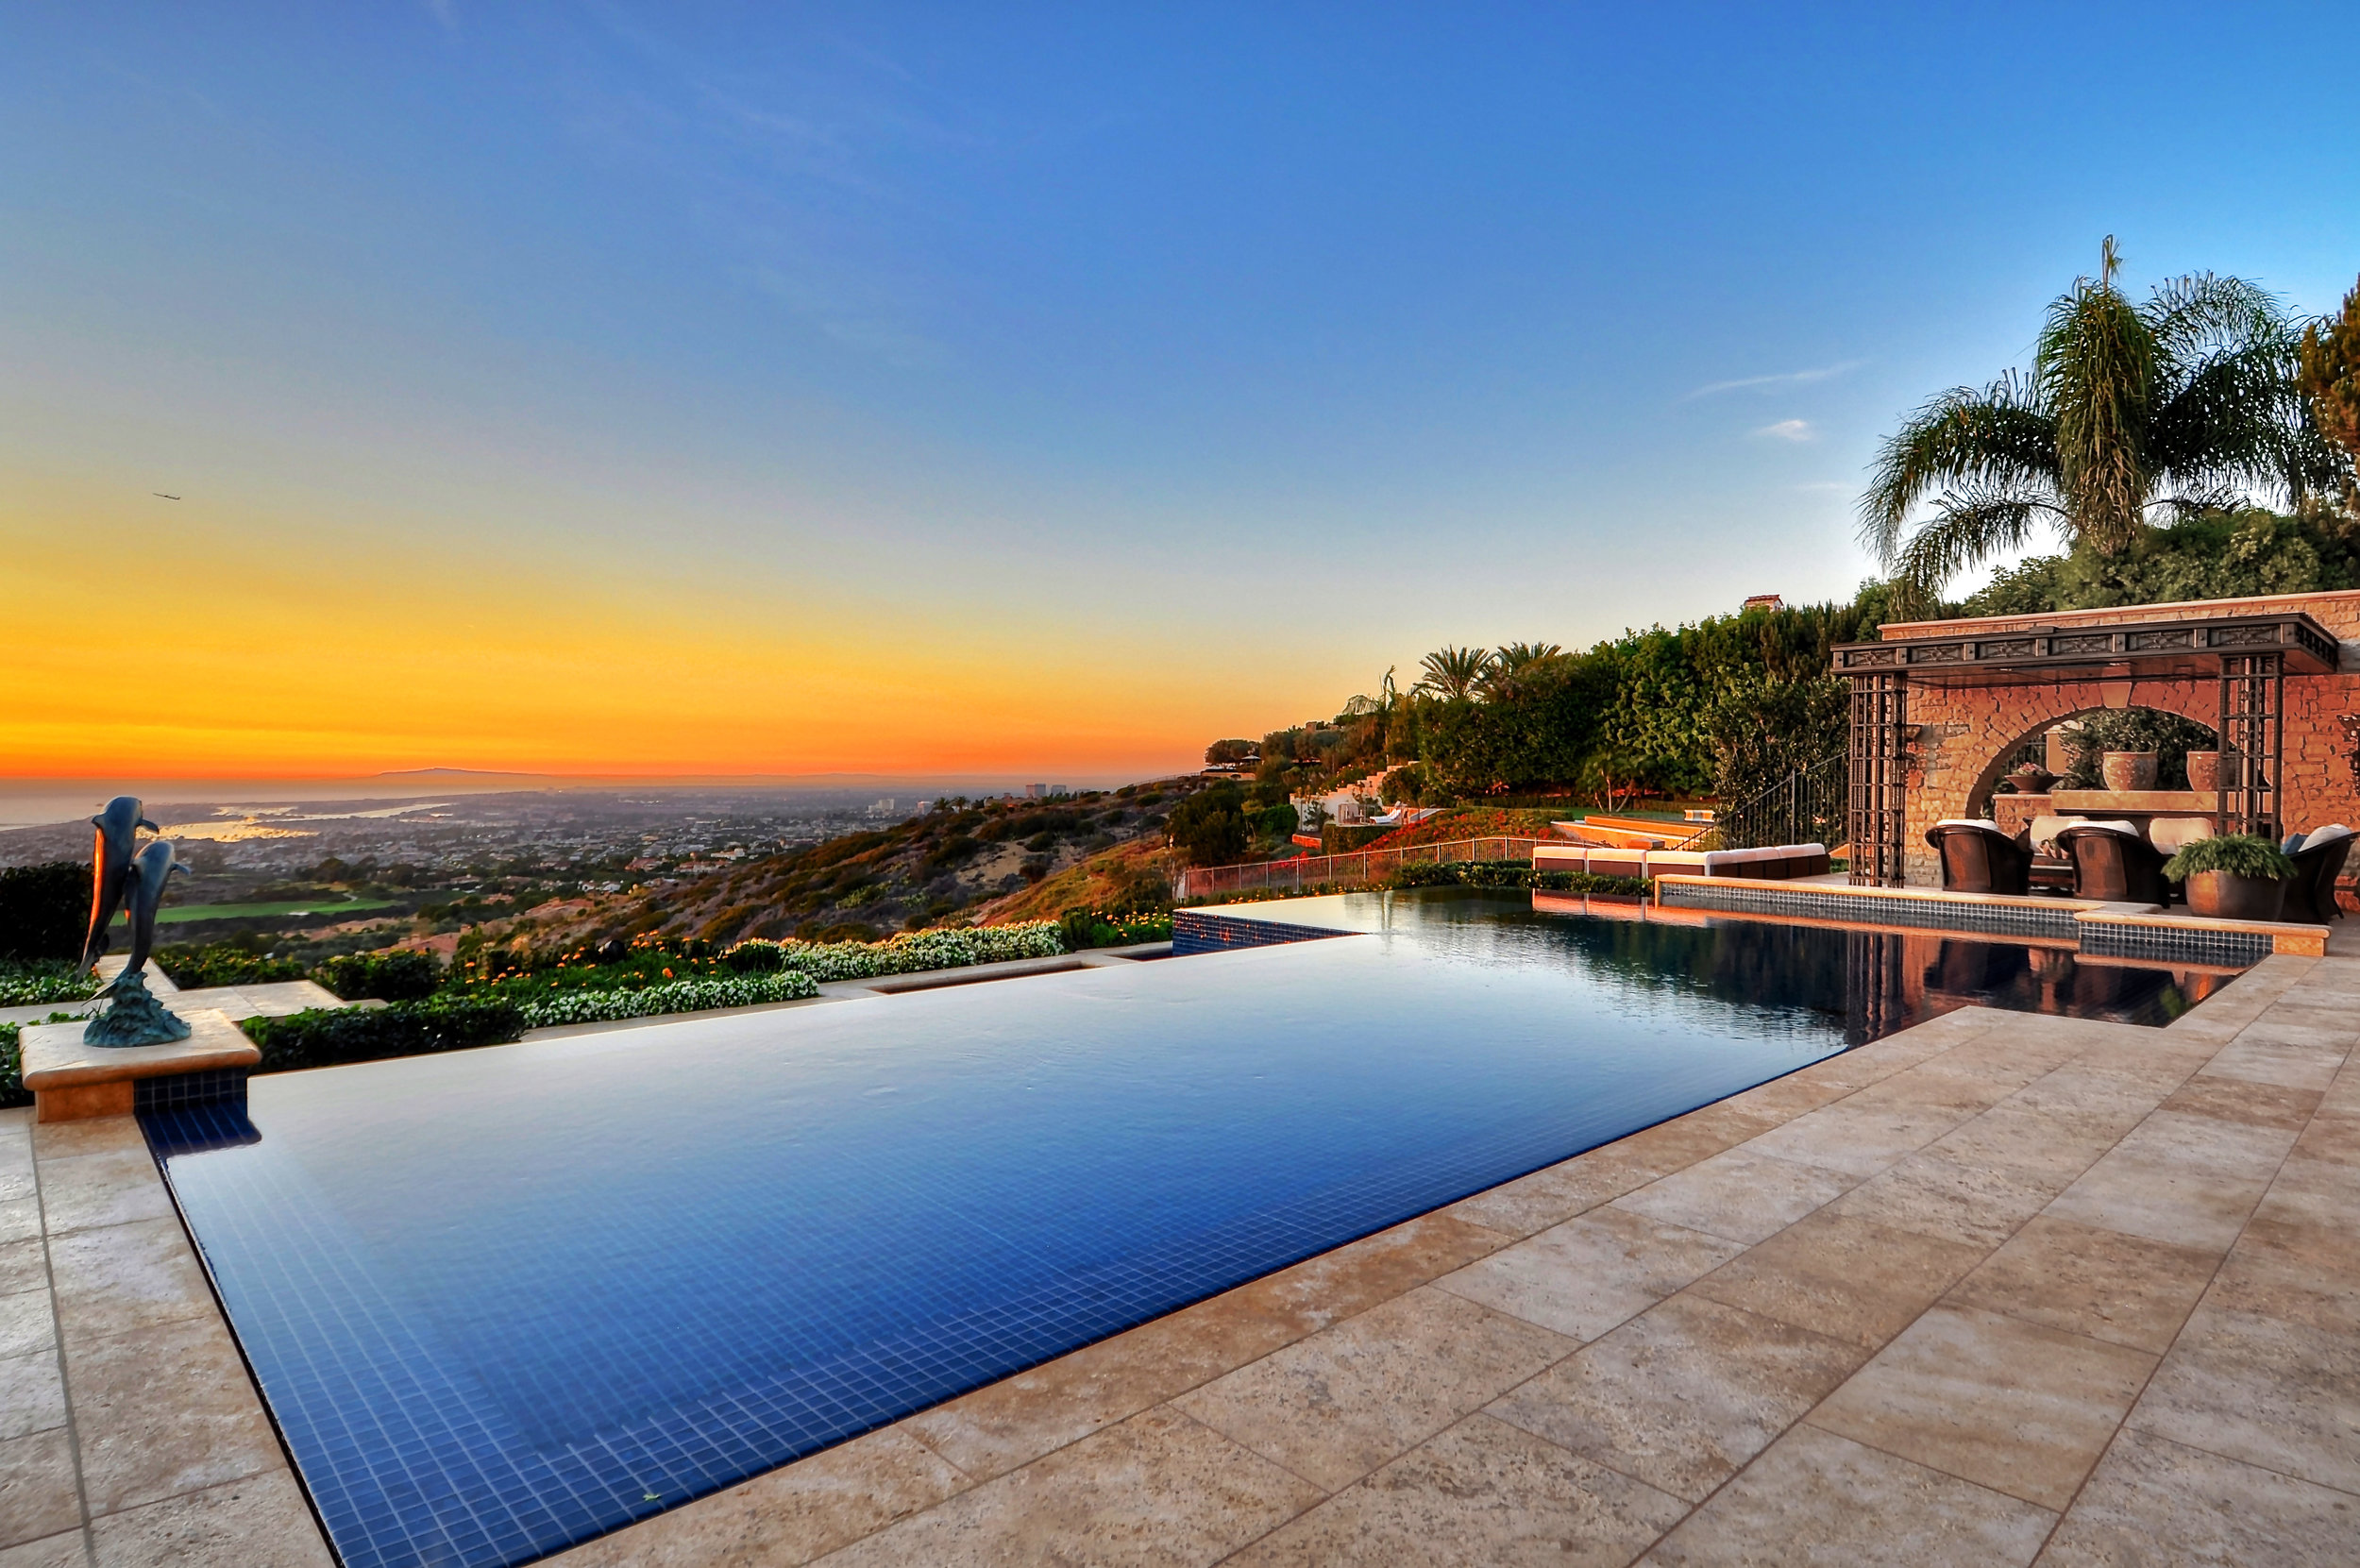 Photo from an interior and exterior renovation  project in Pelican Hill, CA .